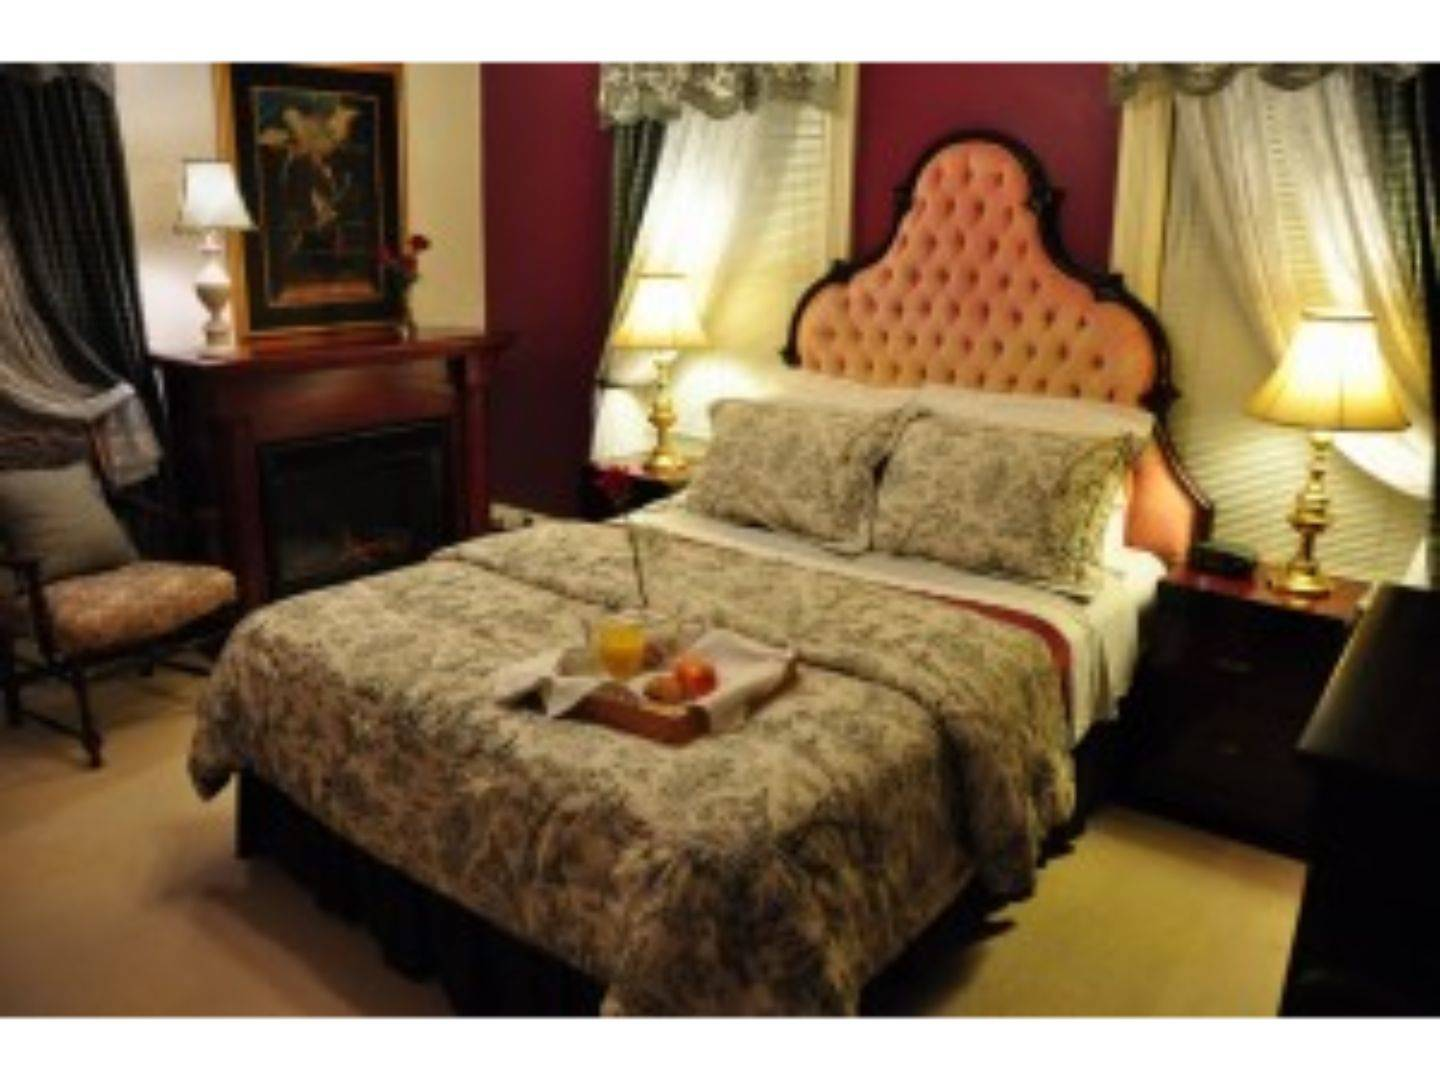 East Marion Bed and Breakfast